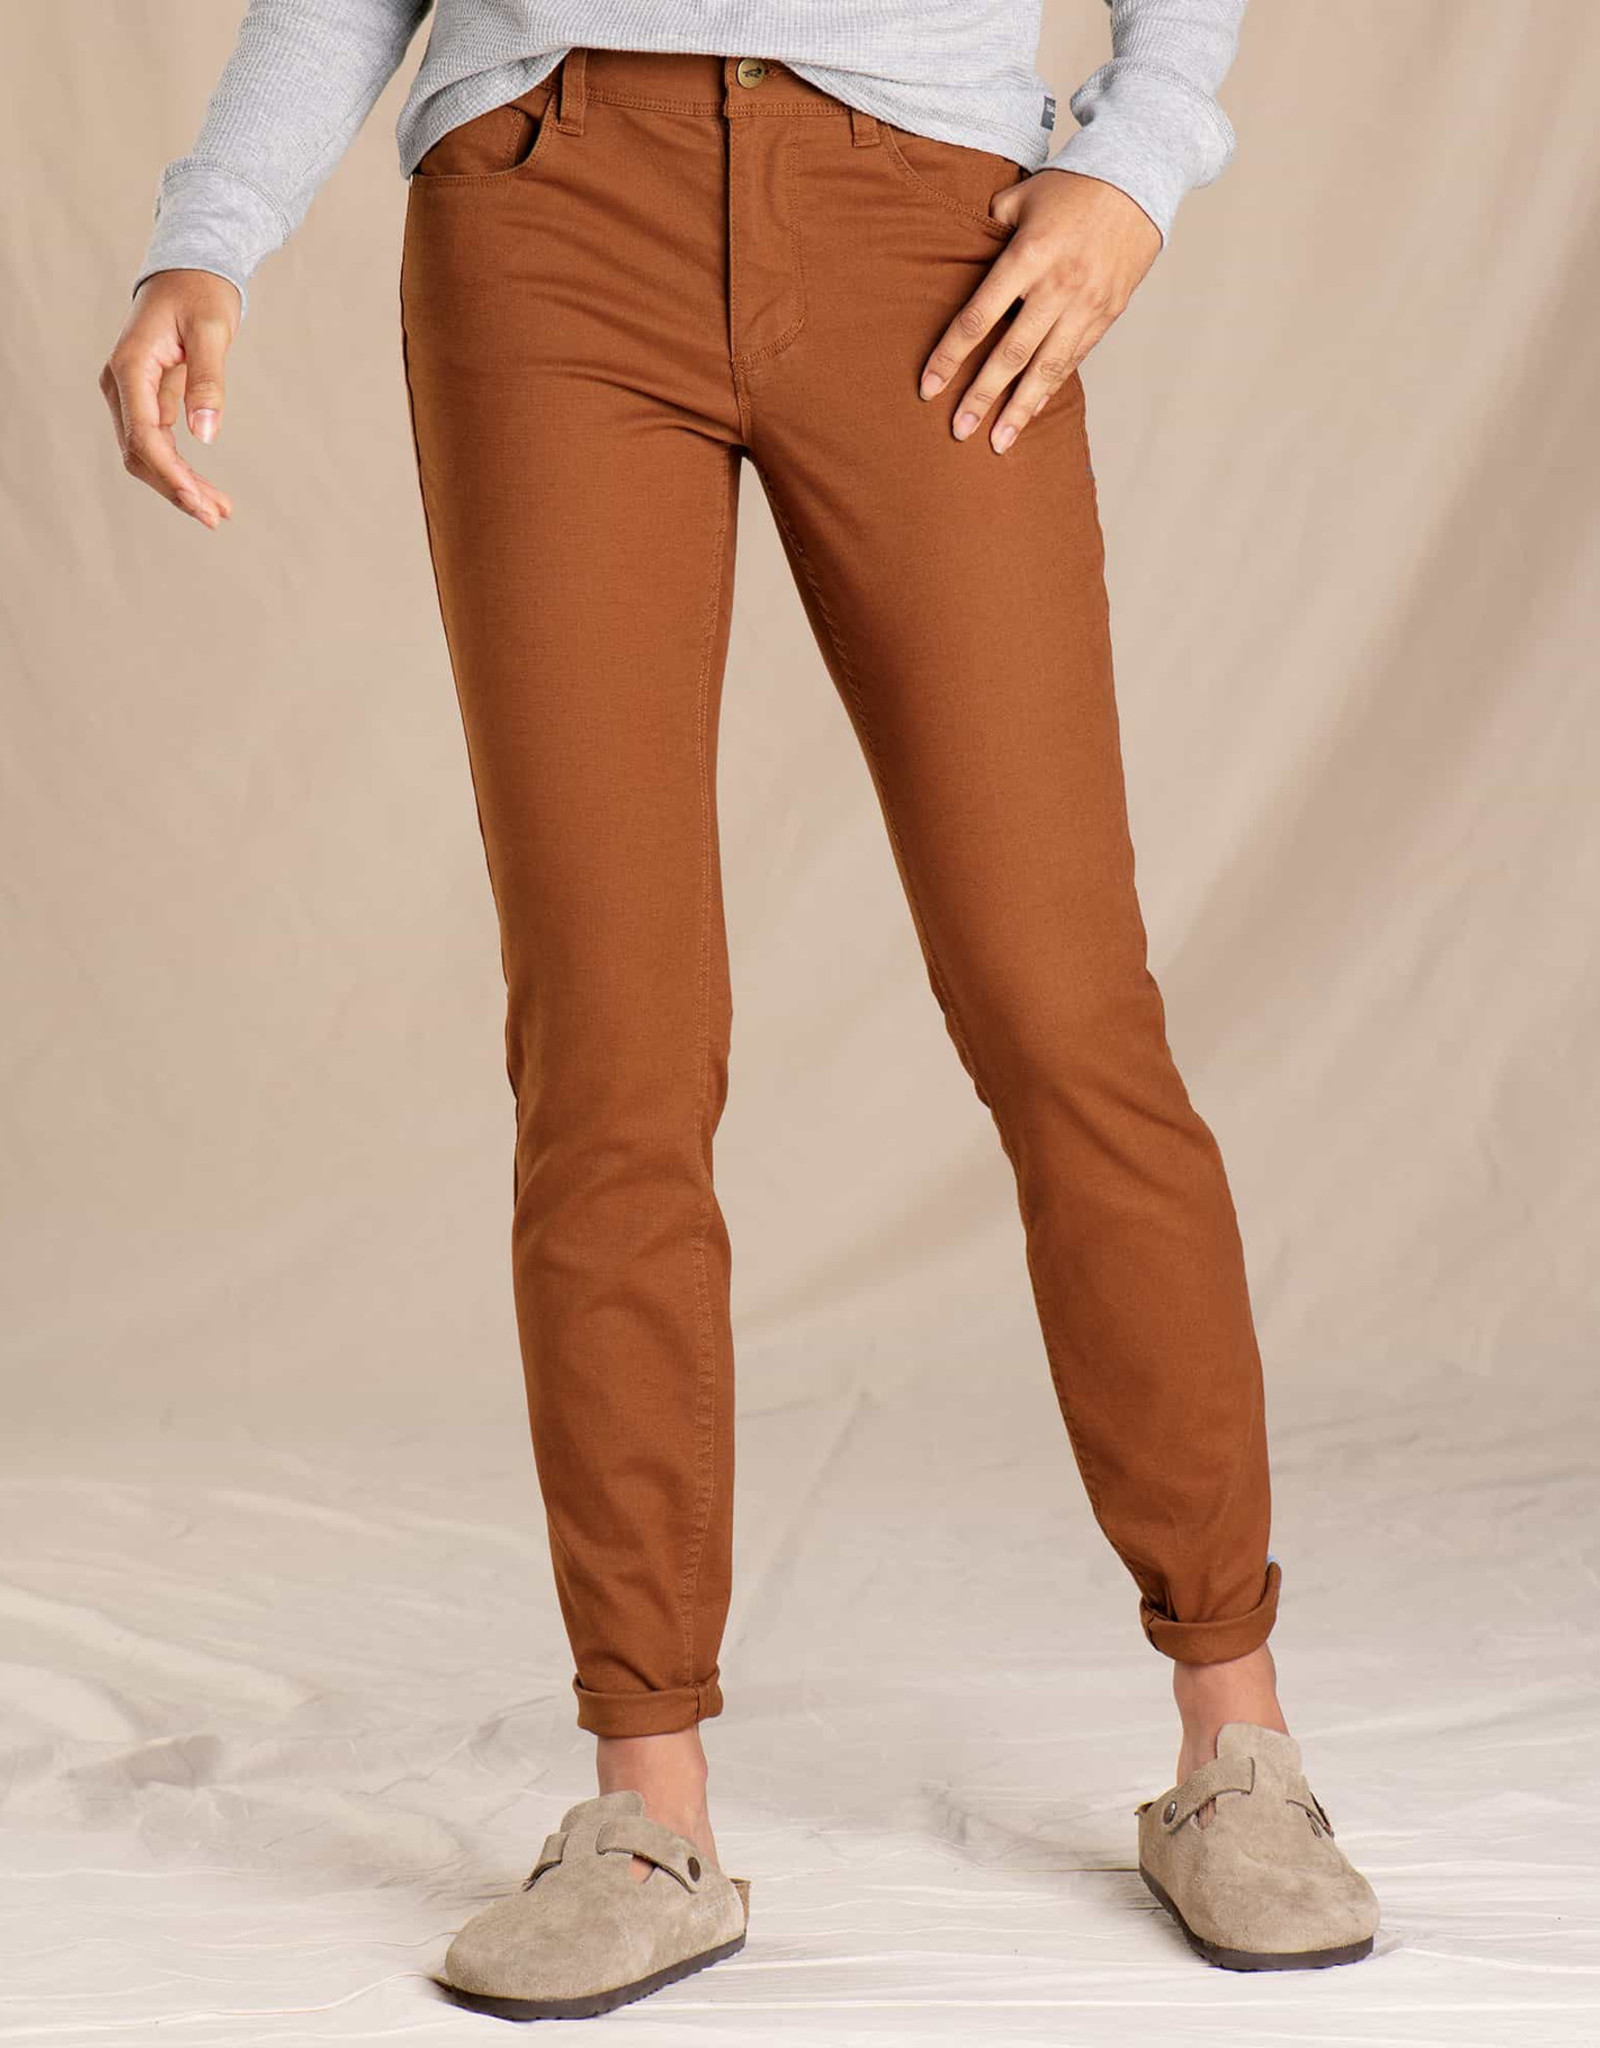 toad & co WOMEN'S TOAD & CO. EARTHWORKS 5 POCKET SKINNY PANT-BROWN SUGAR